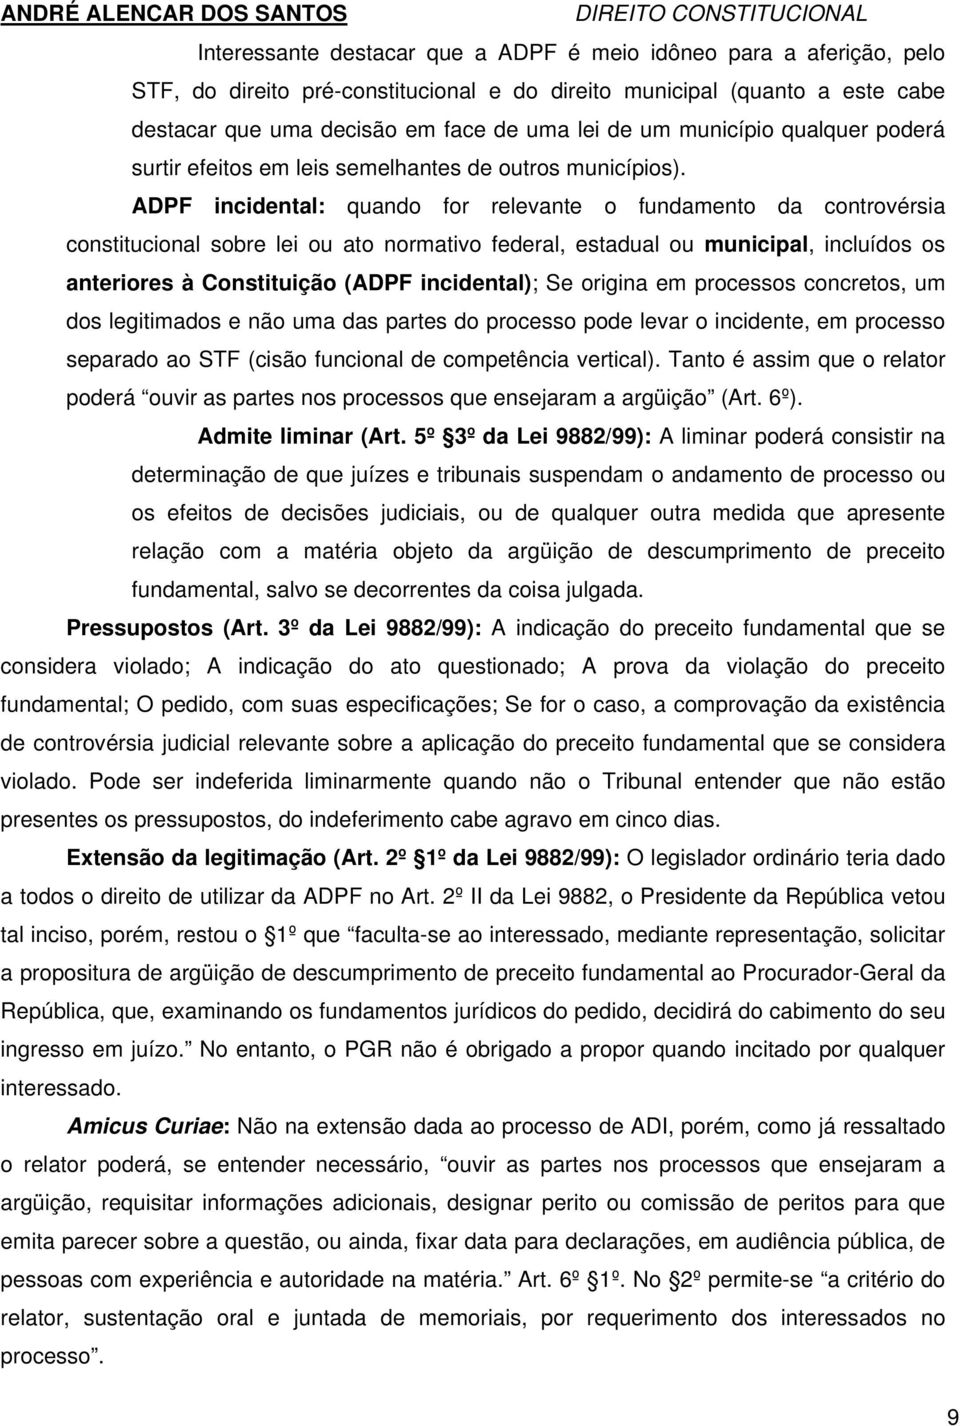 ADPF incidental: quando for relevante o fundamento da controvérsia constitucional sobre lei ou ato normativo federal, estadual ou municipal, incluídos os anteriores à Constituição (ADPF incidental);